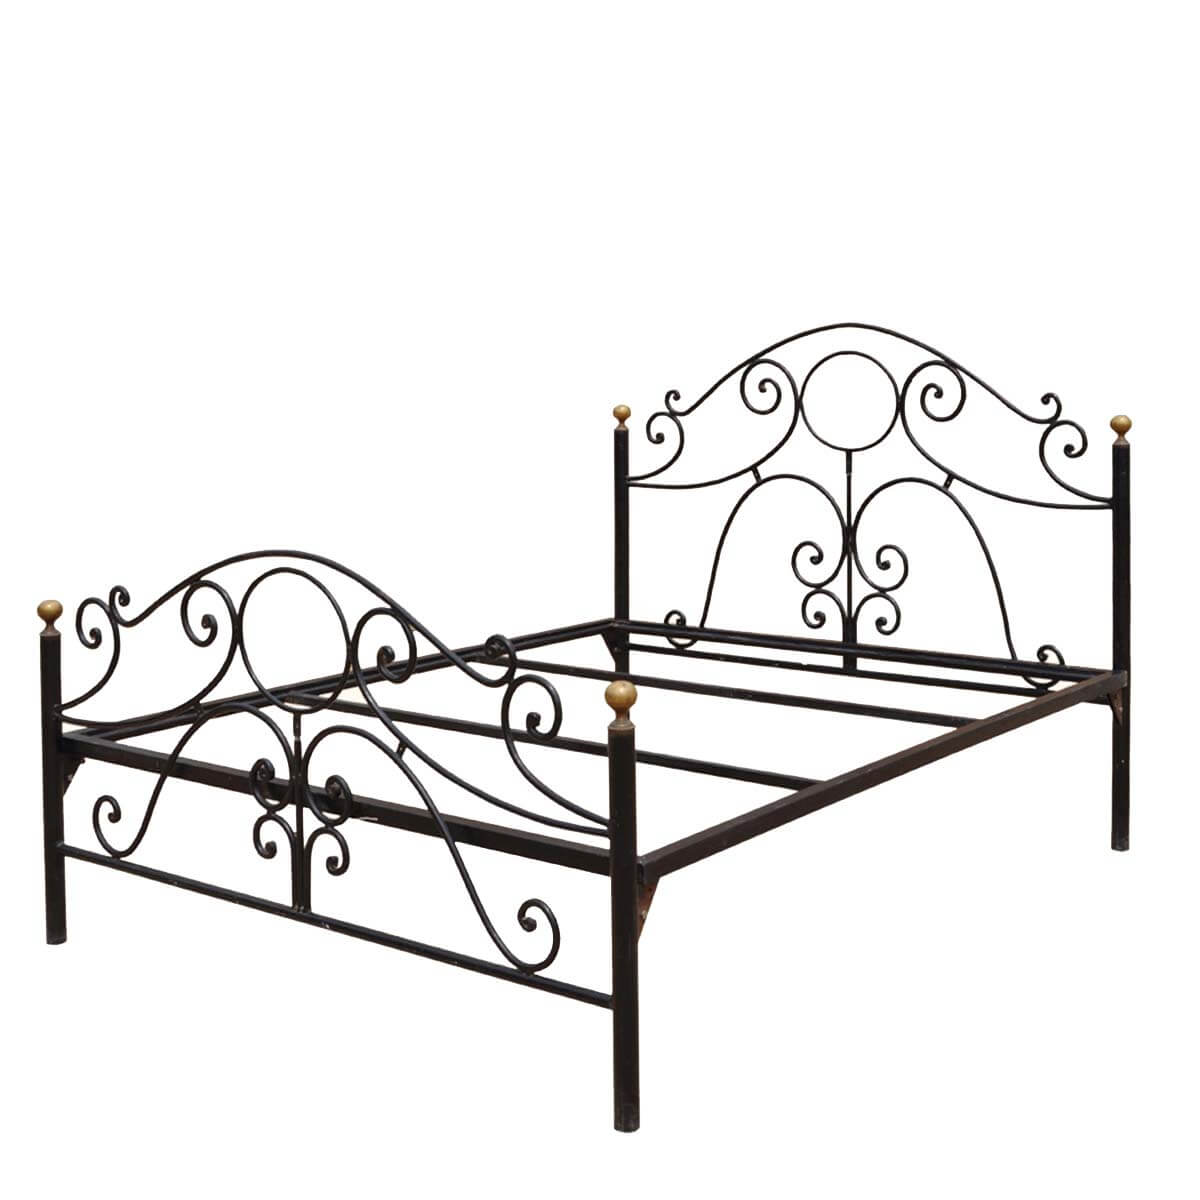 Parisian black wrought iron decorative bed w headboard Decorative headboards for beds